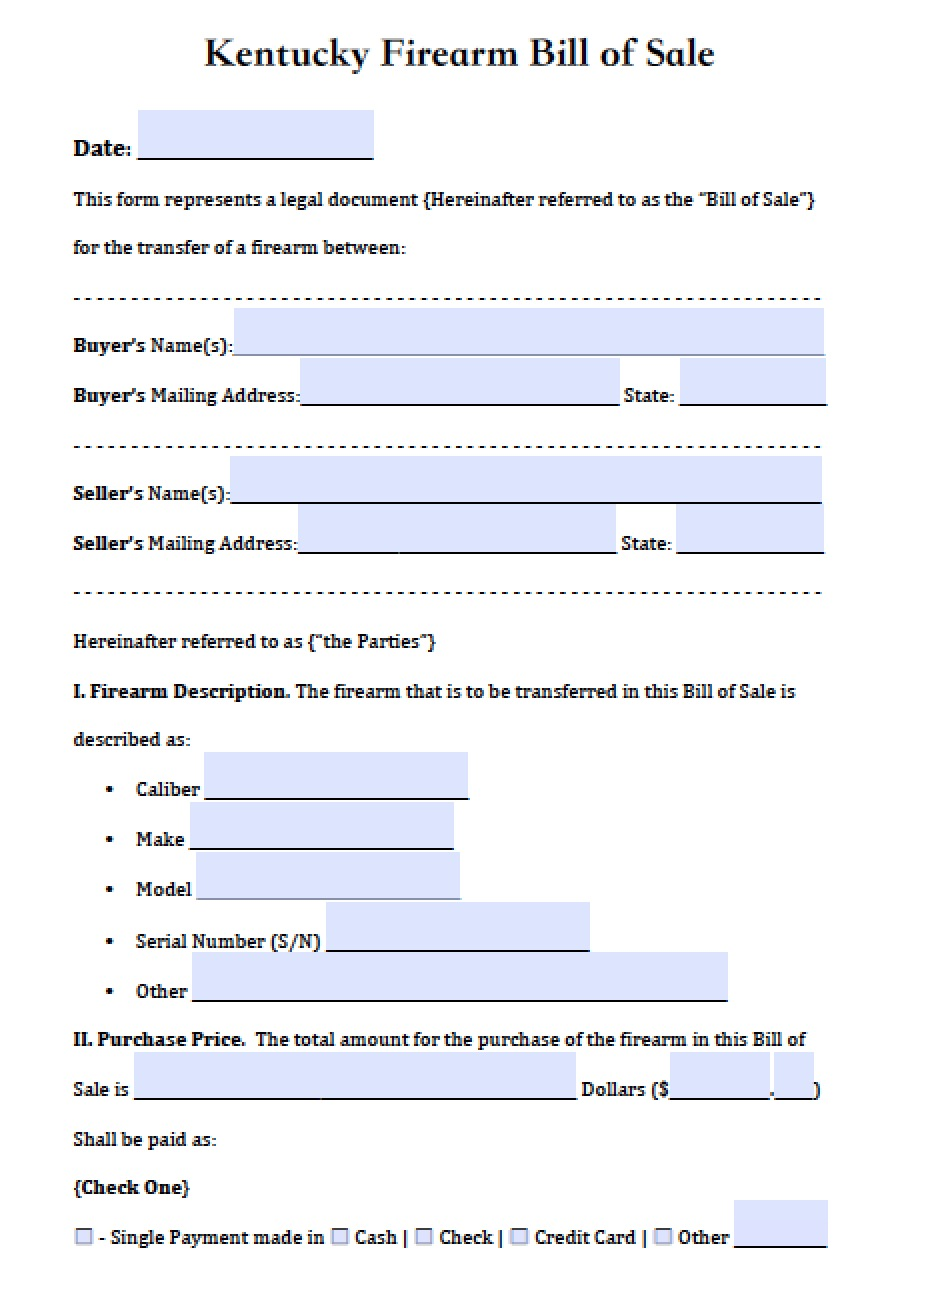 firearm bill of sale Free Louisiana Firearm/Gun Bill of Sale Form | PDF | Word (.doc)